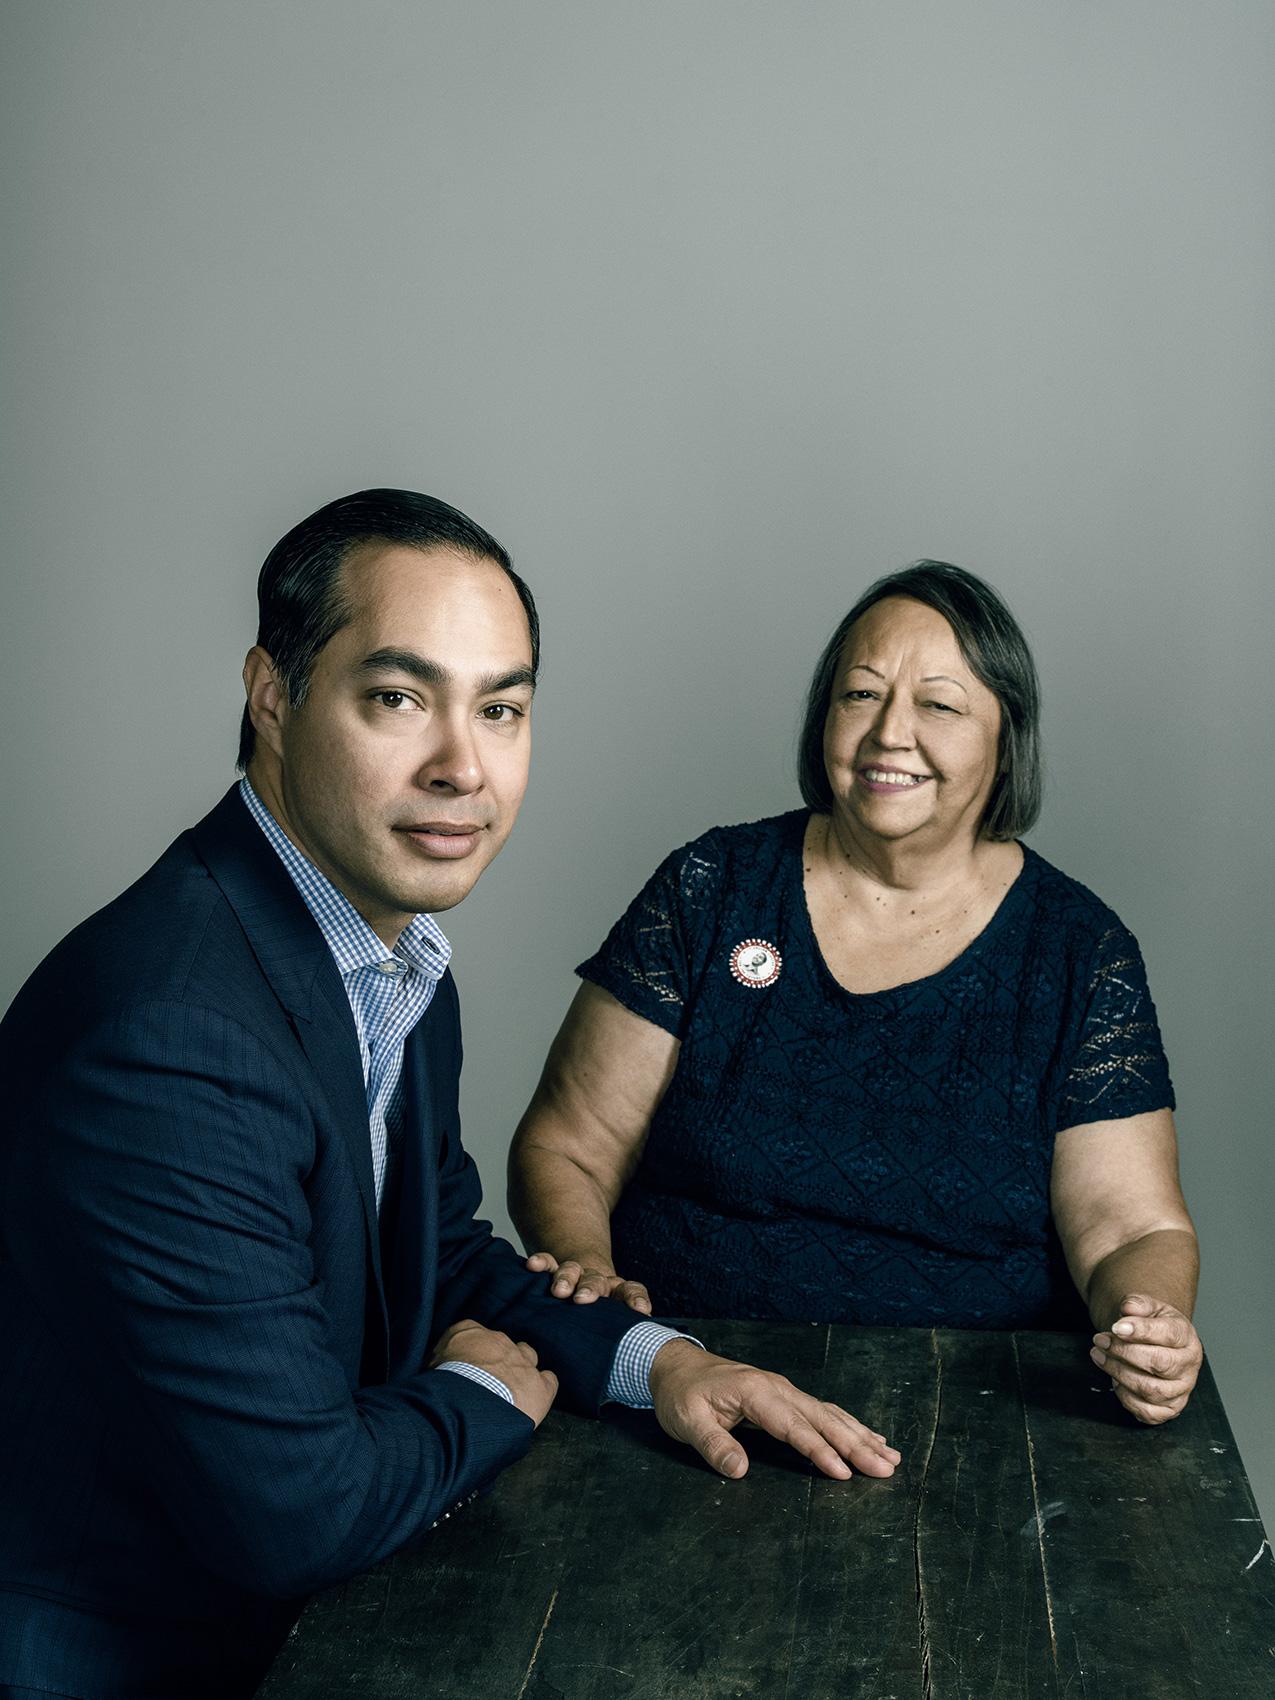 Democratic Presidential Candidate, Julian Castro, with his mother, Rosie Castro in San Antonio, TX.  Photographed by Josh Huskin.